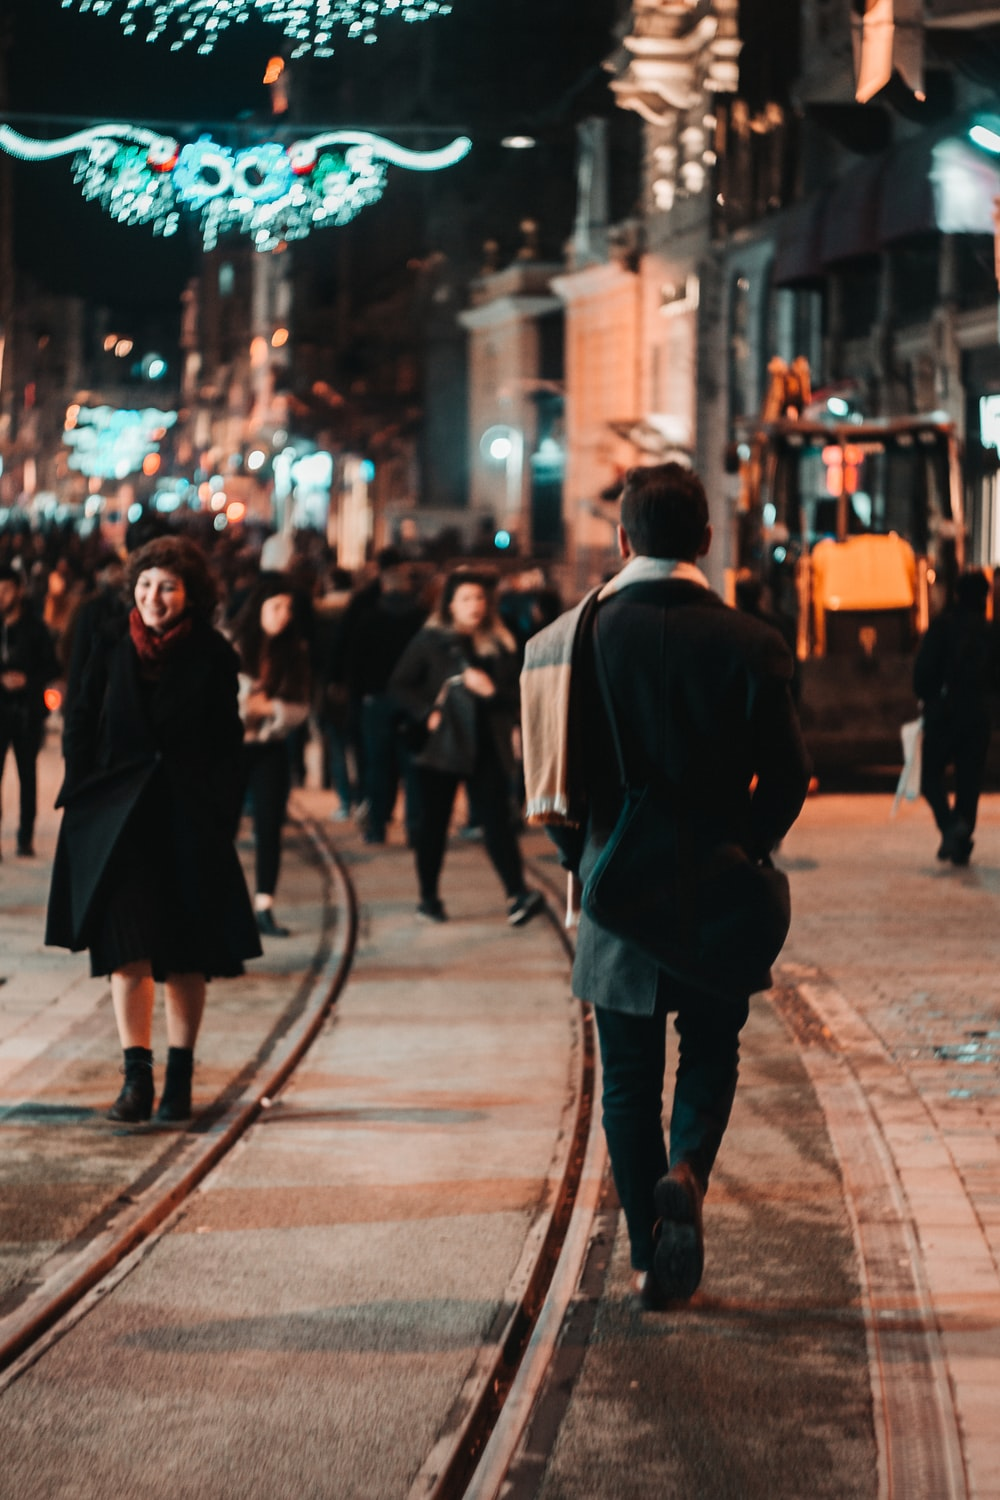 people walking at the streets of the city during night